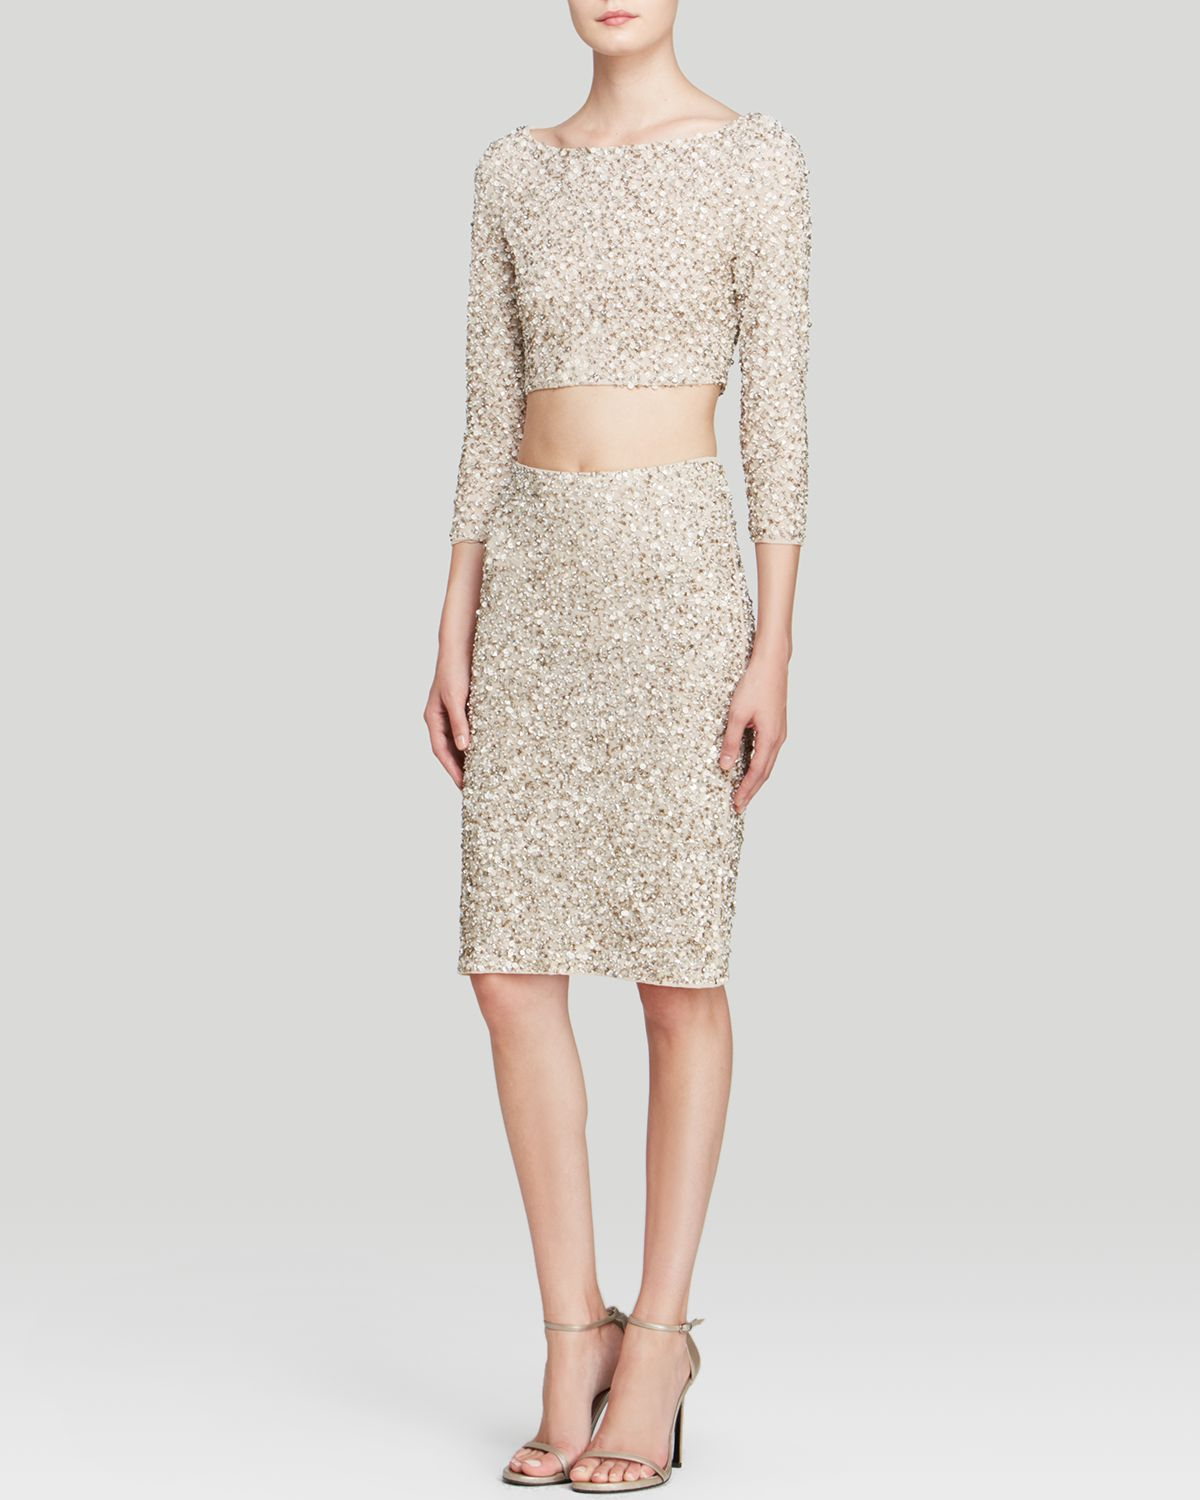 468d5138084957 Alice + Olivia Lacey Embellished Crop Top in Natural - Lyst